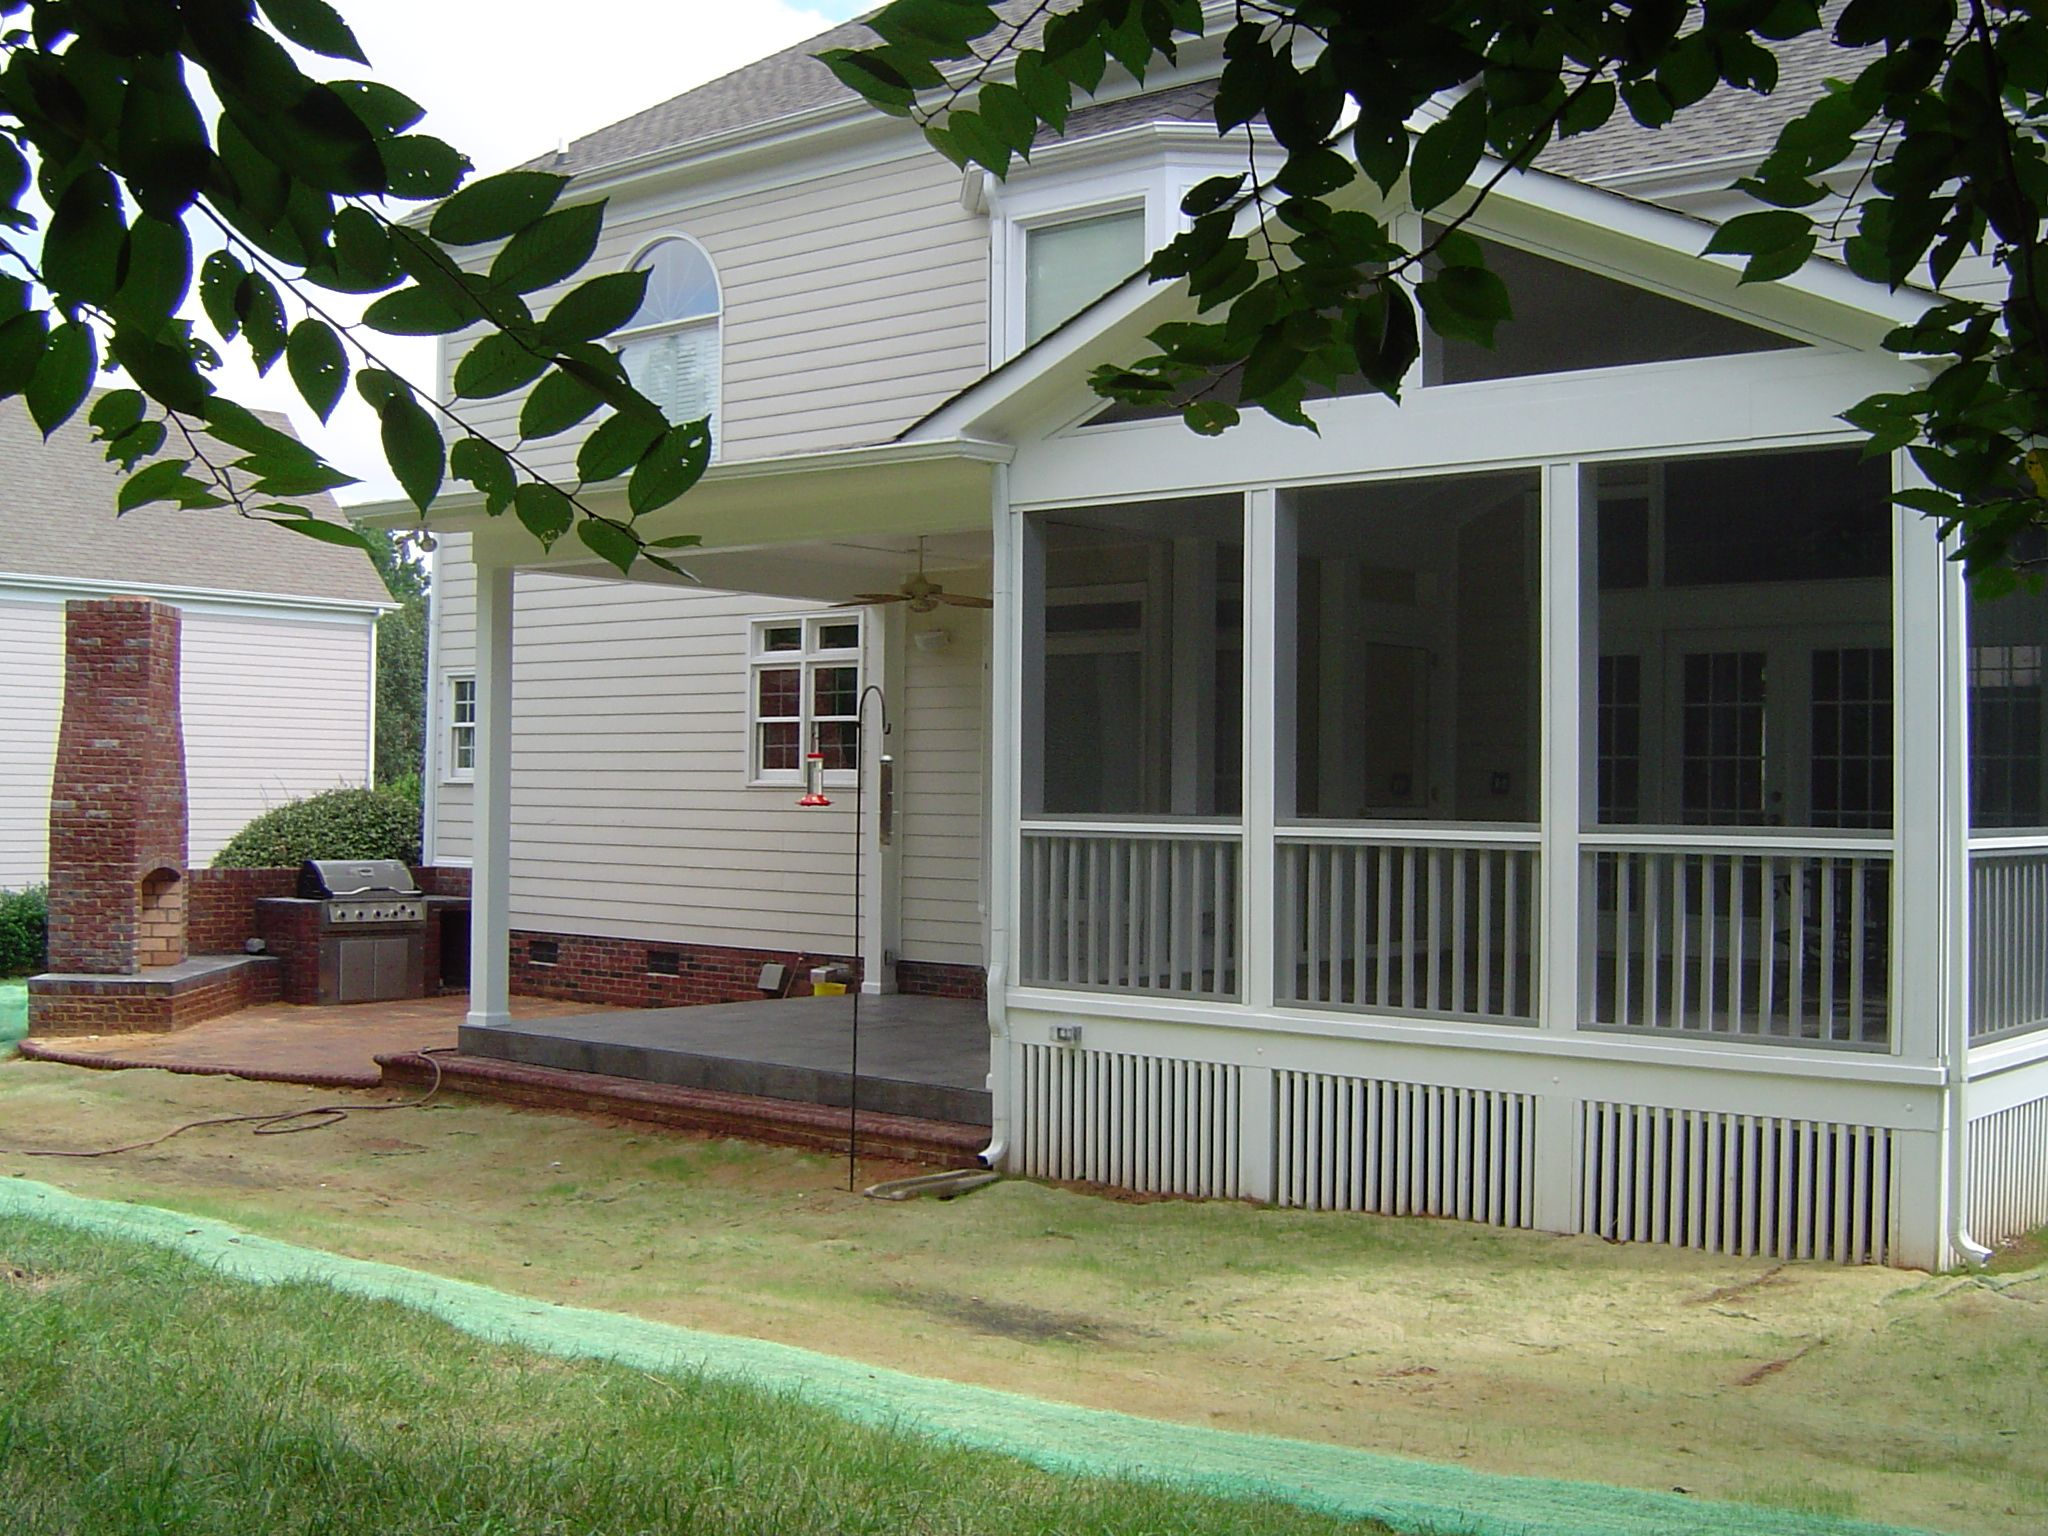 image screen porch ideas inspirations image of screen porch ideas designs - Screened In Porch Ideas Design